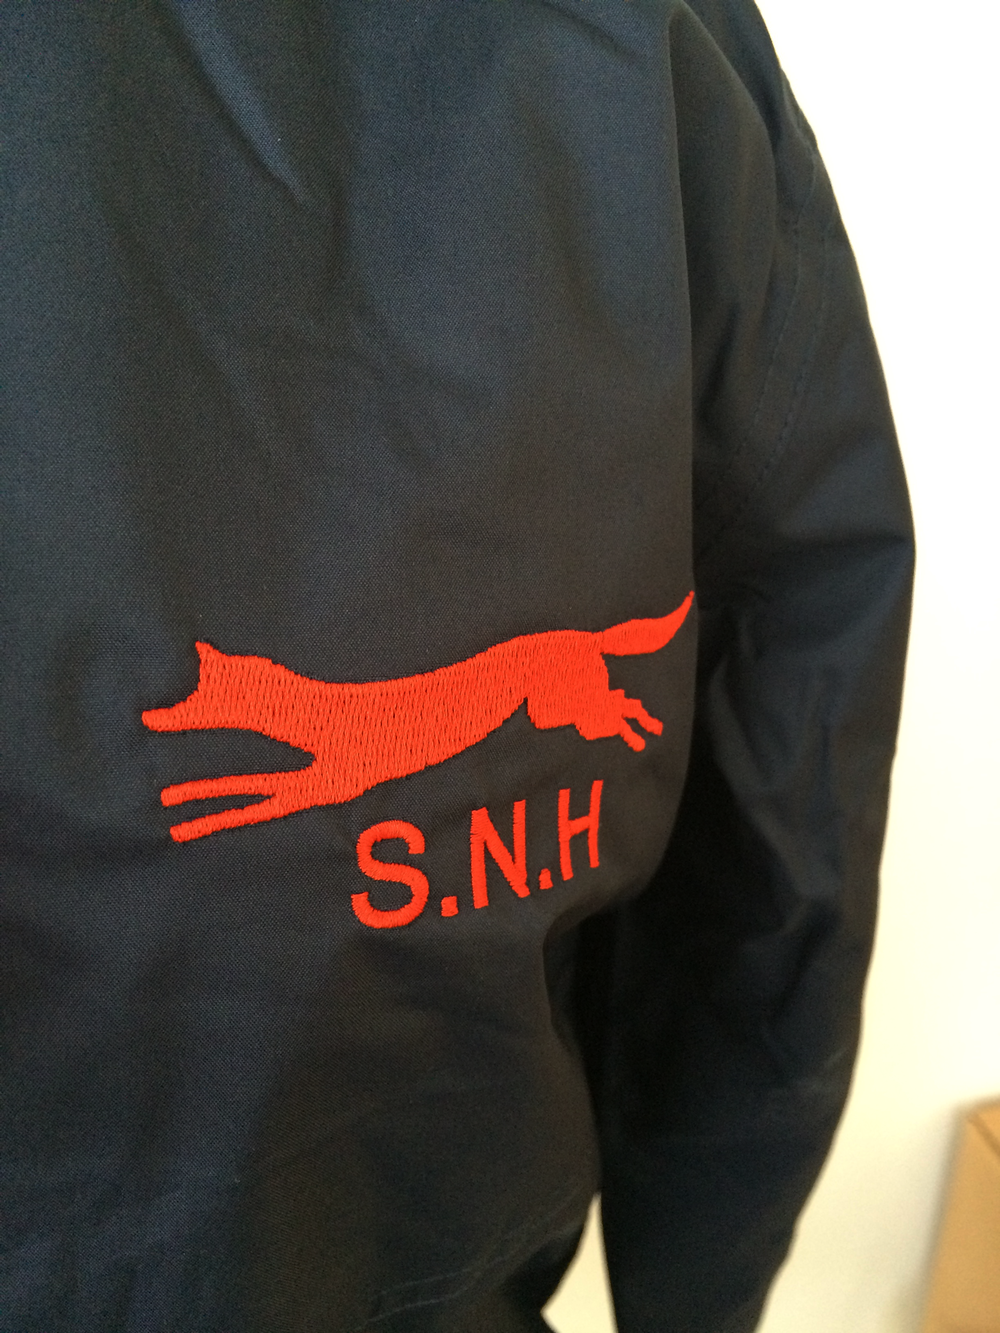 South Notts Hunt Embroidered Clothing